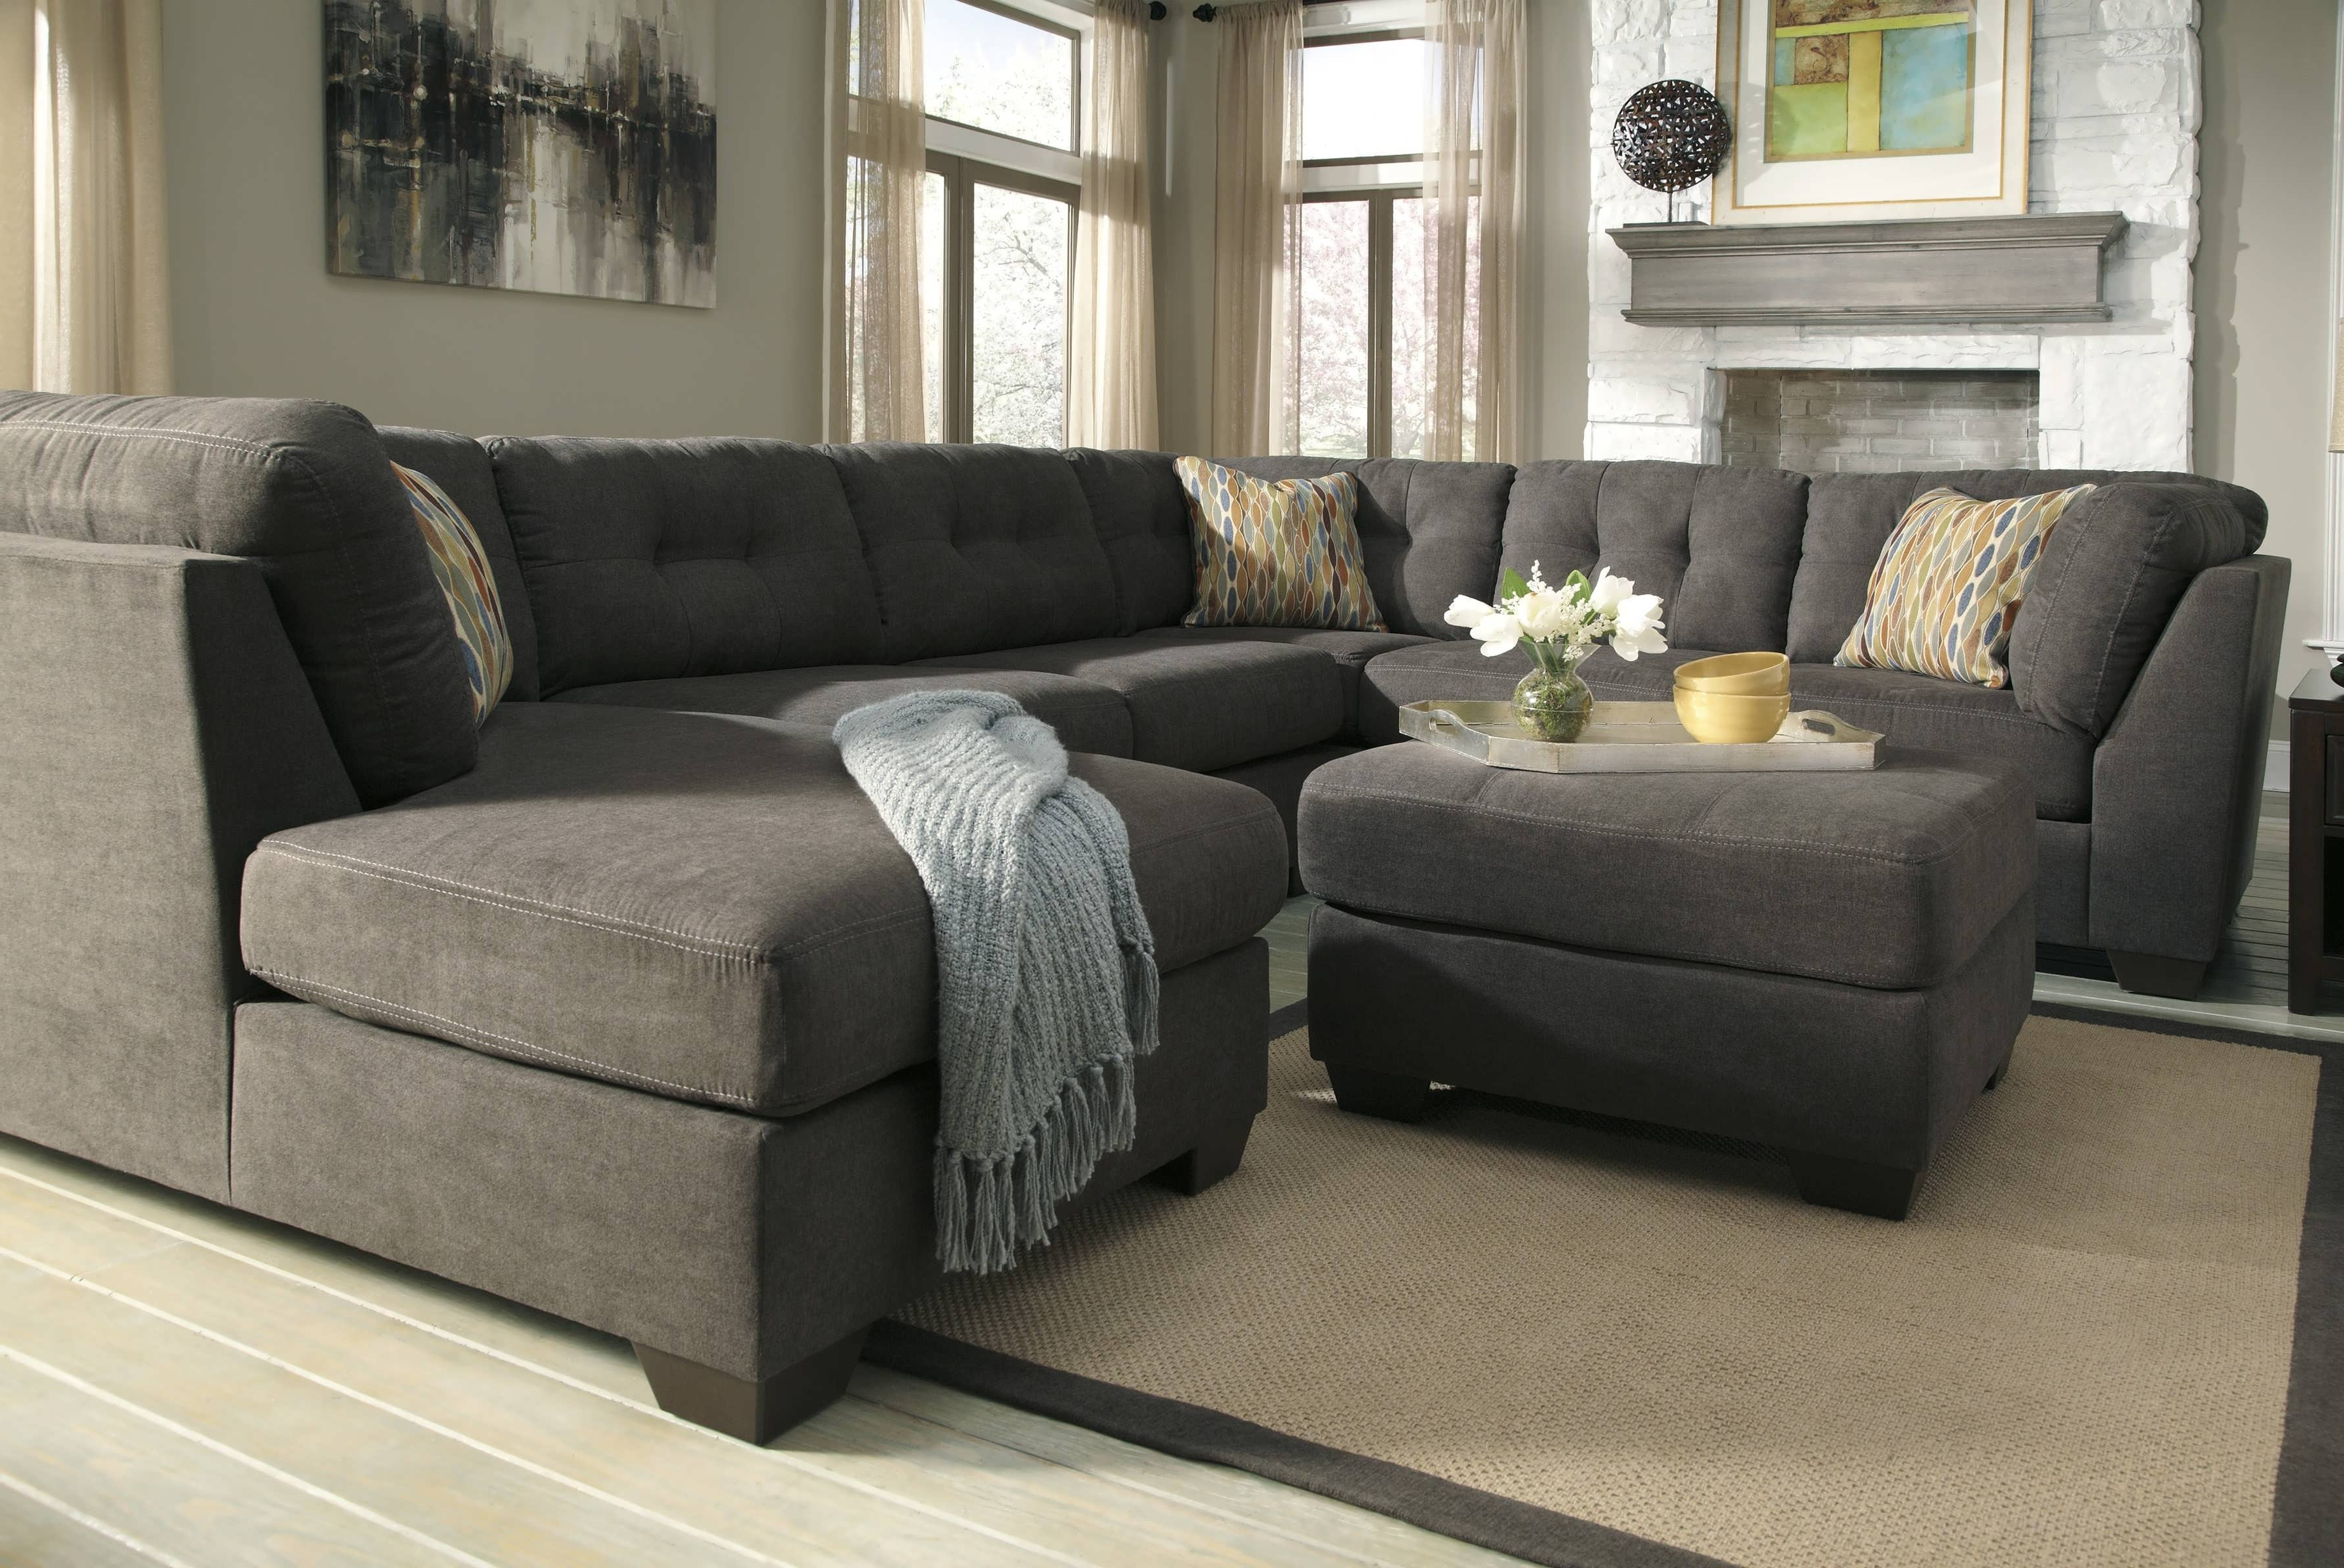 Most Recently Released Sofa : Grey Sectionals For Sale Grey Chaise Sofa Dark Grey Regarding Grey Chaise Sectionals (View 12 of 15)